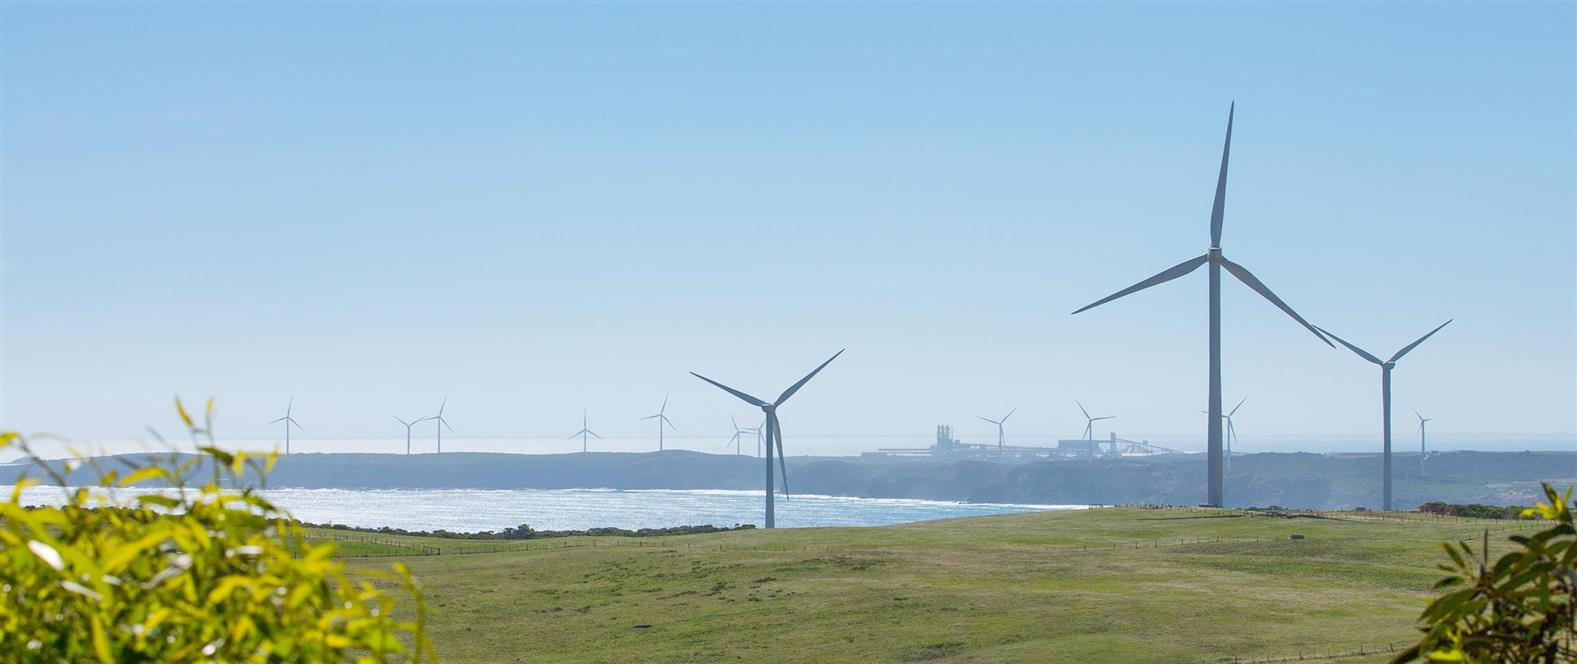 Supporting a renewable wind energy future